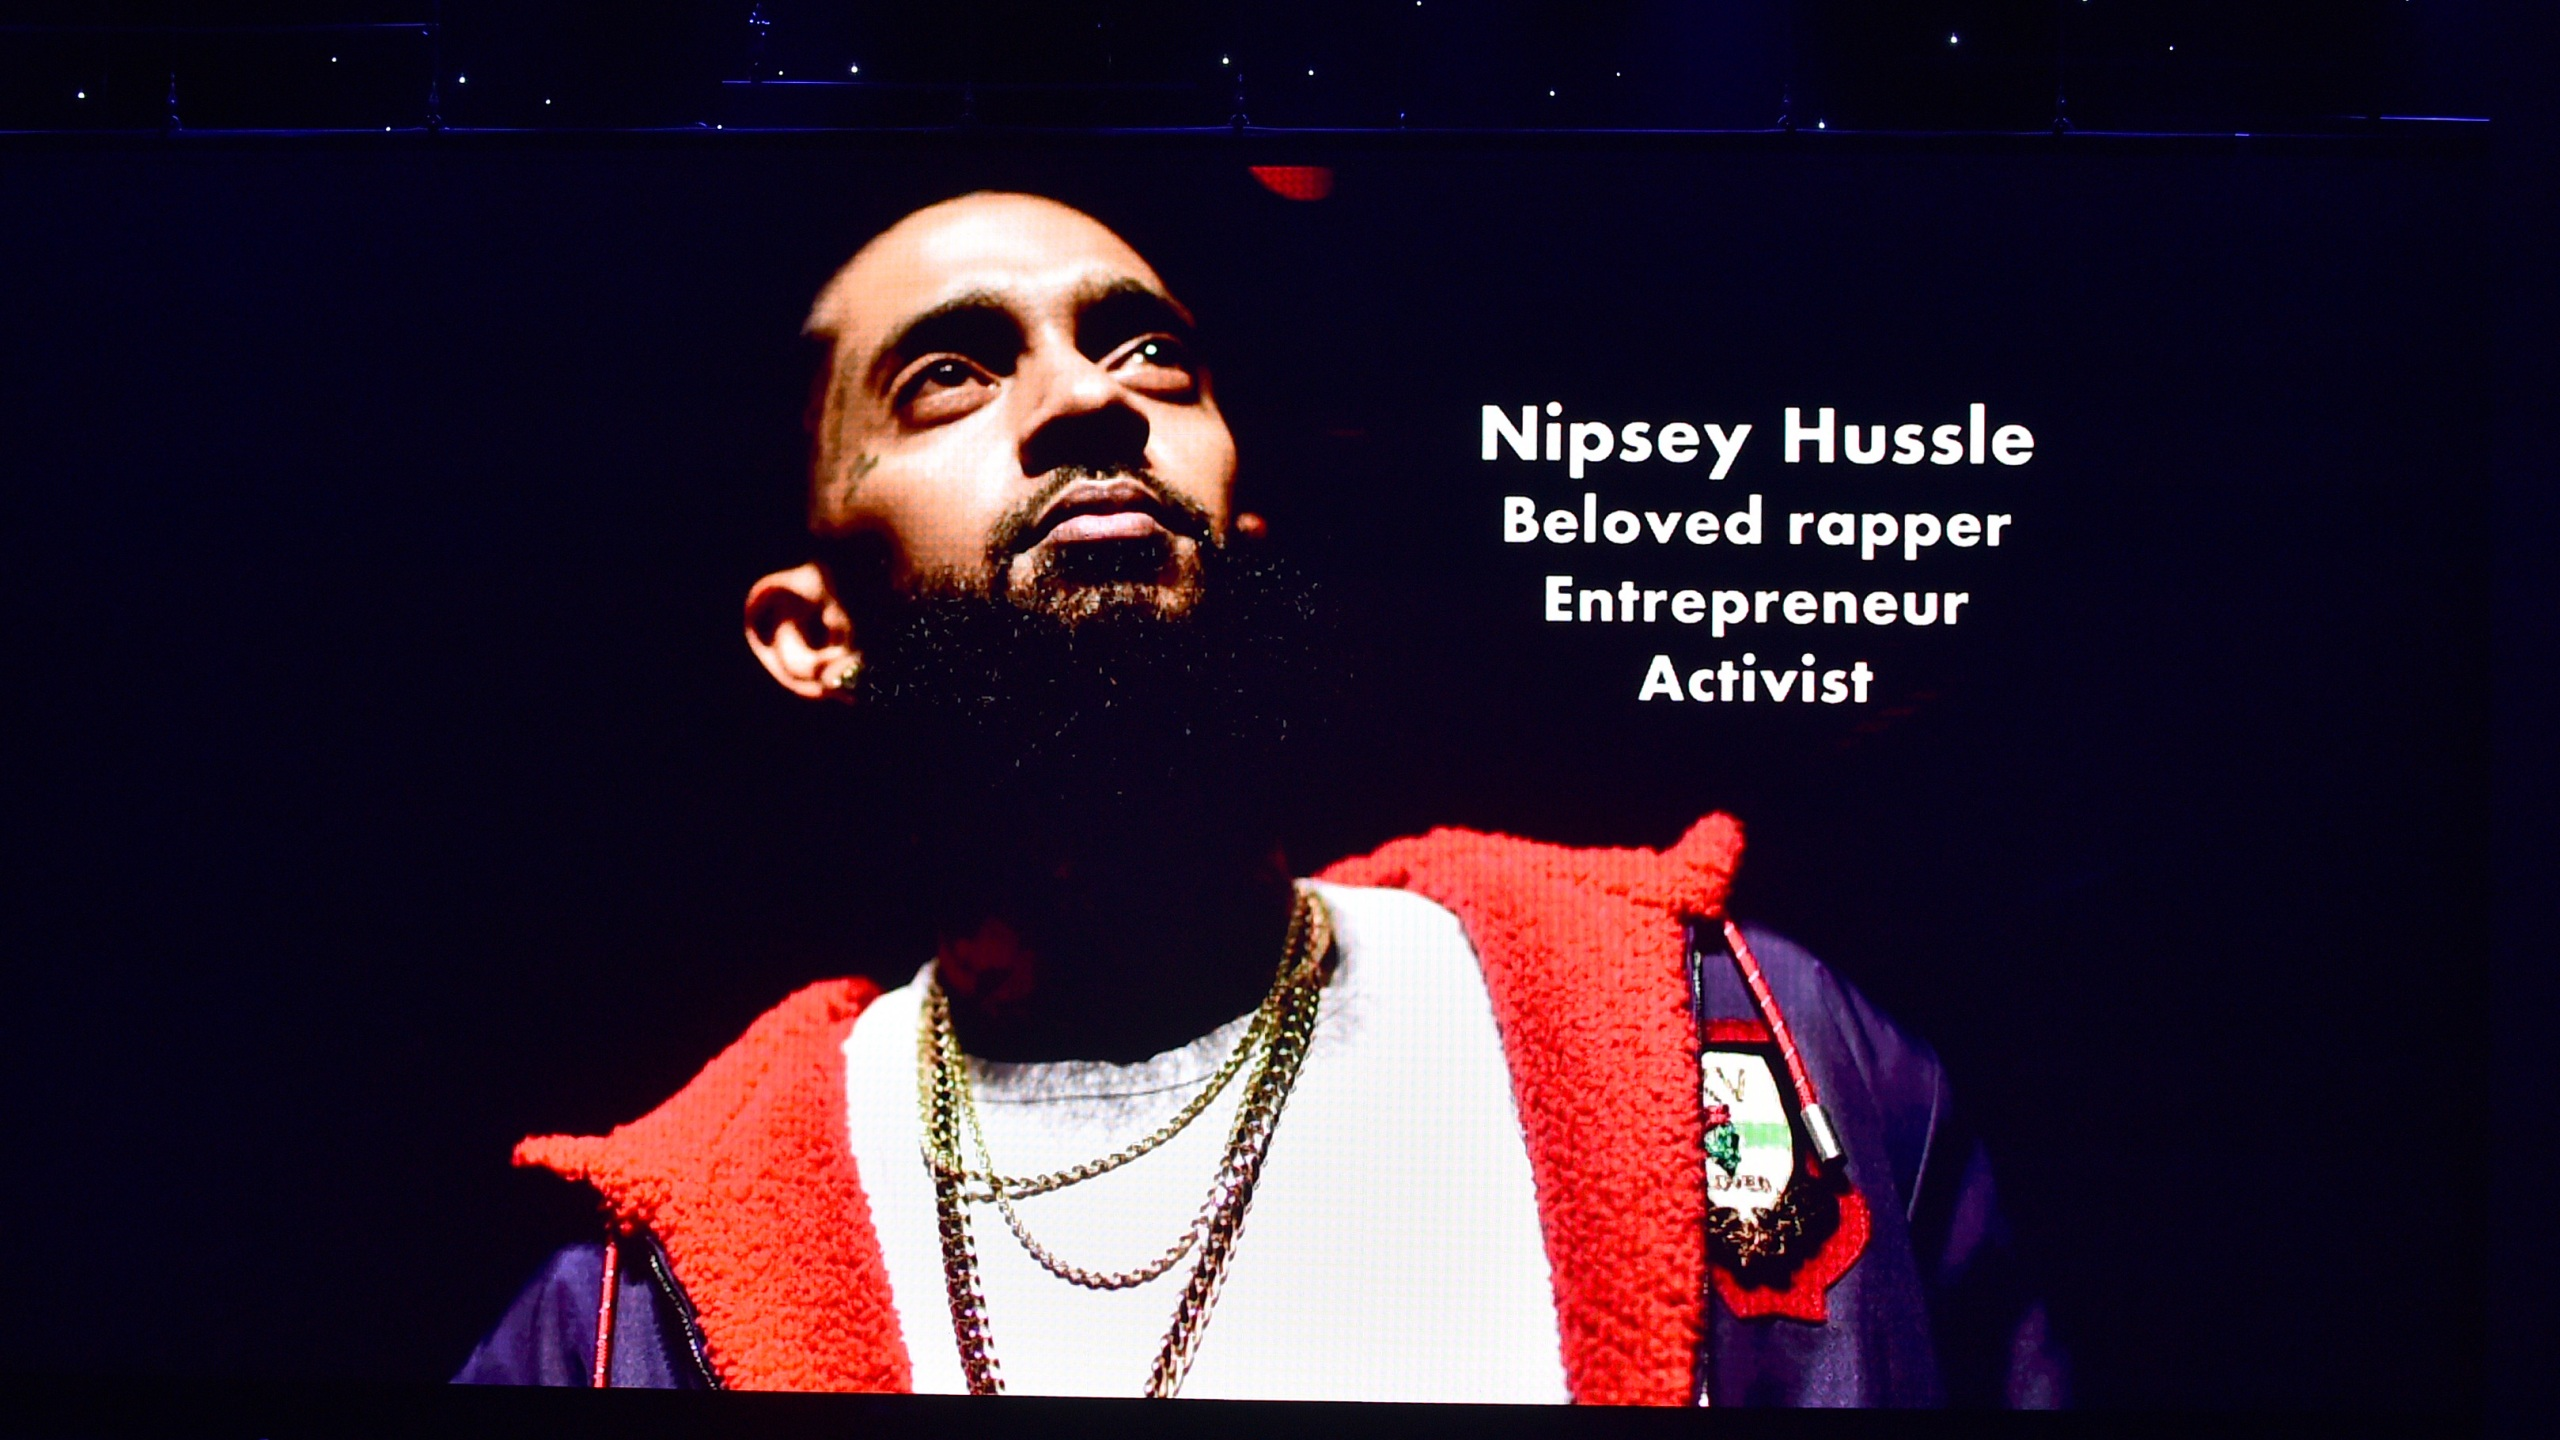 Nipsey Hussle is honored during the in memoriam onstage during the 51st NAACP Image Awards, presented by BET, at Pasadena Civic Auditorium on Feb. 22, 2020. (Aaron J. Thornton/Getty Images for BET)